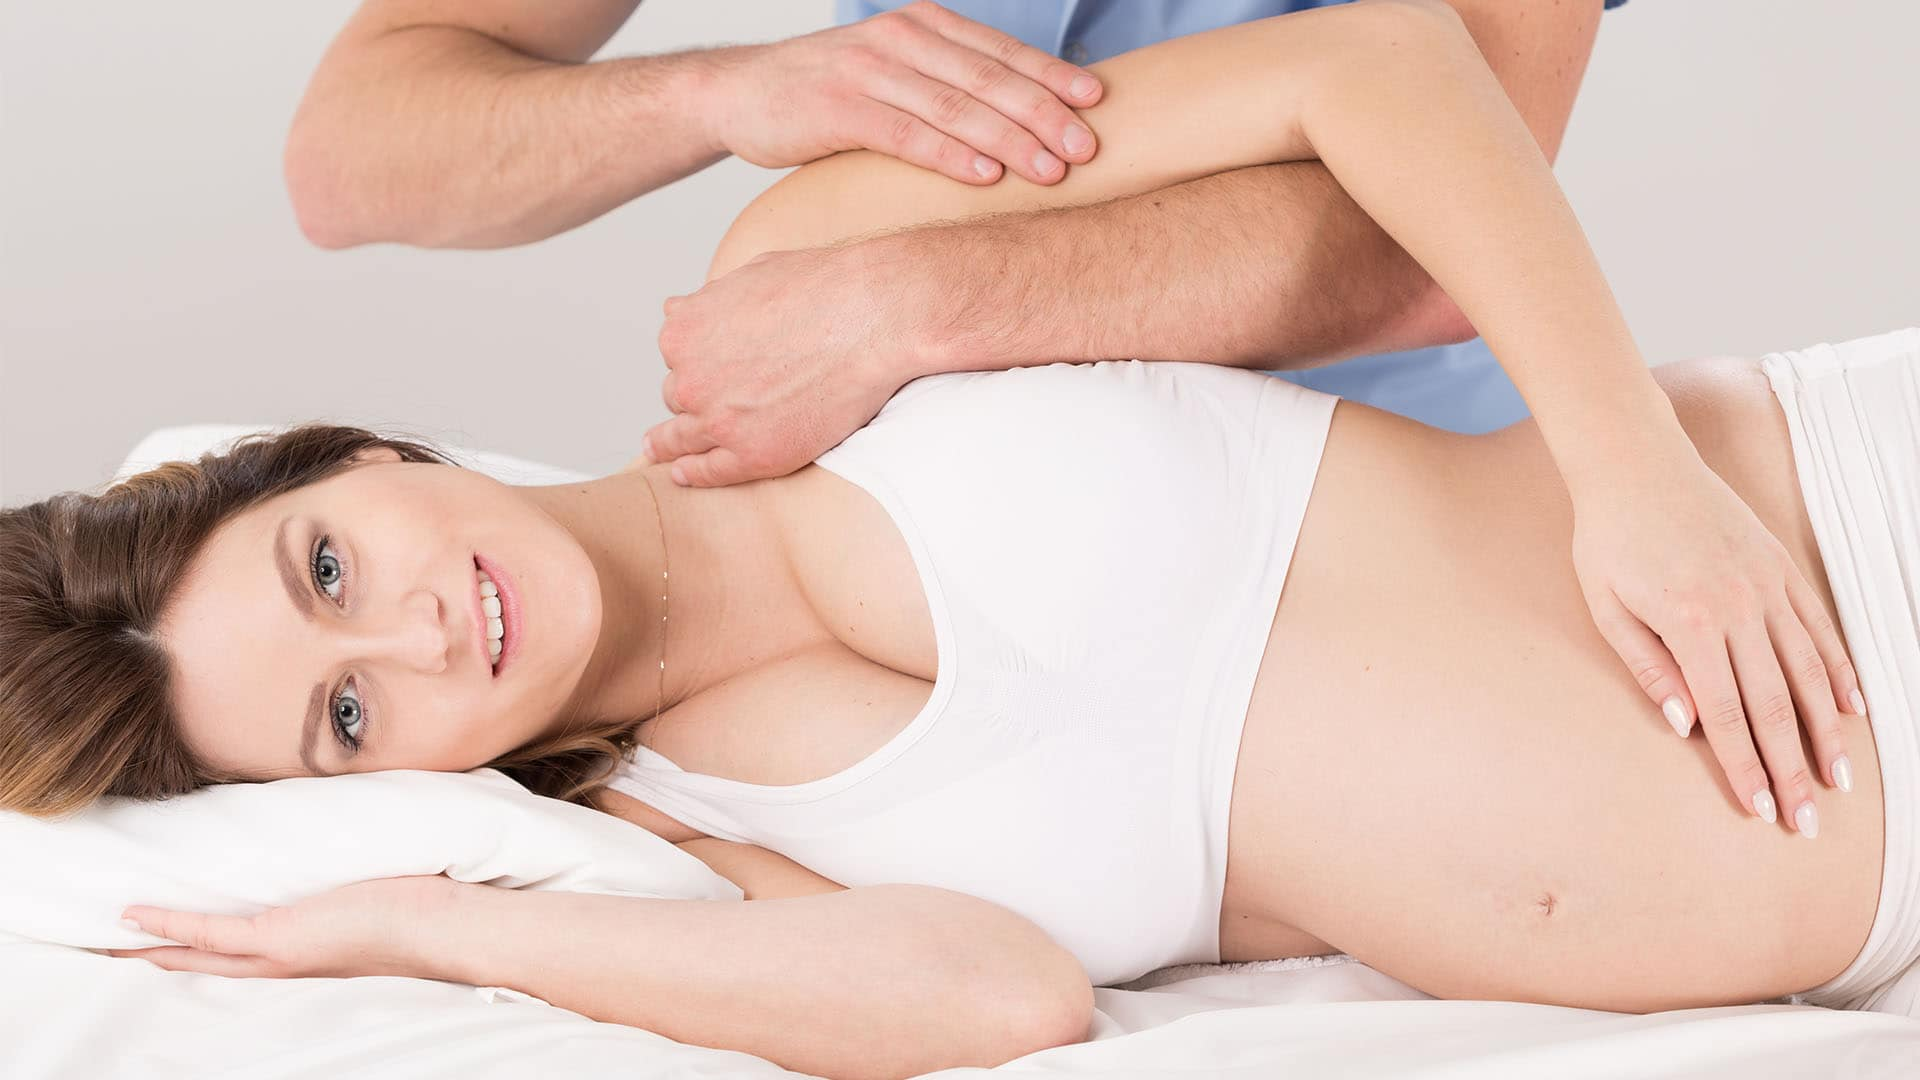 When can you get a Prenatal massage?